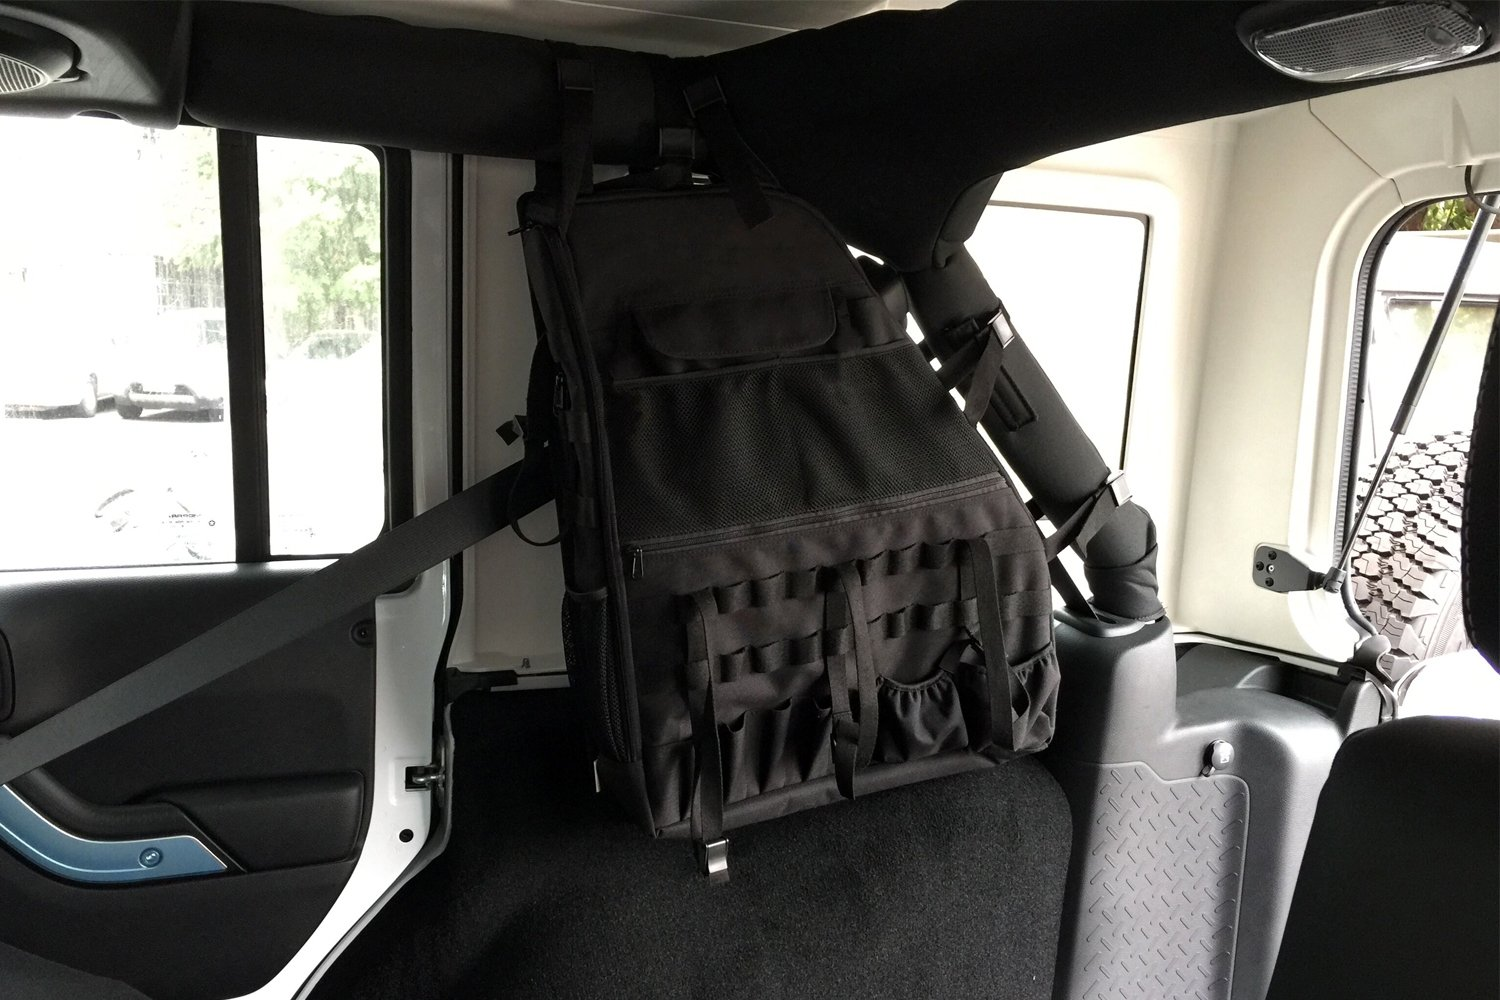 Multi Functional and Large Capacity Jeep JK Storage Saddle Bags Fits Jeeps Years 2007-2017 Jeep Wrangler Roll Cage Storage Saddle Bags